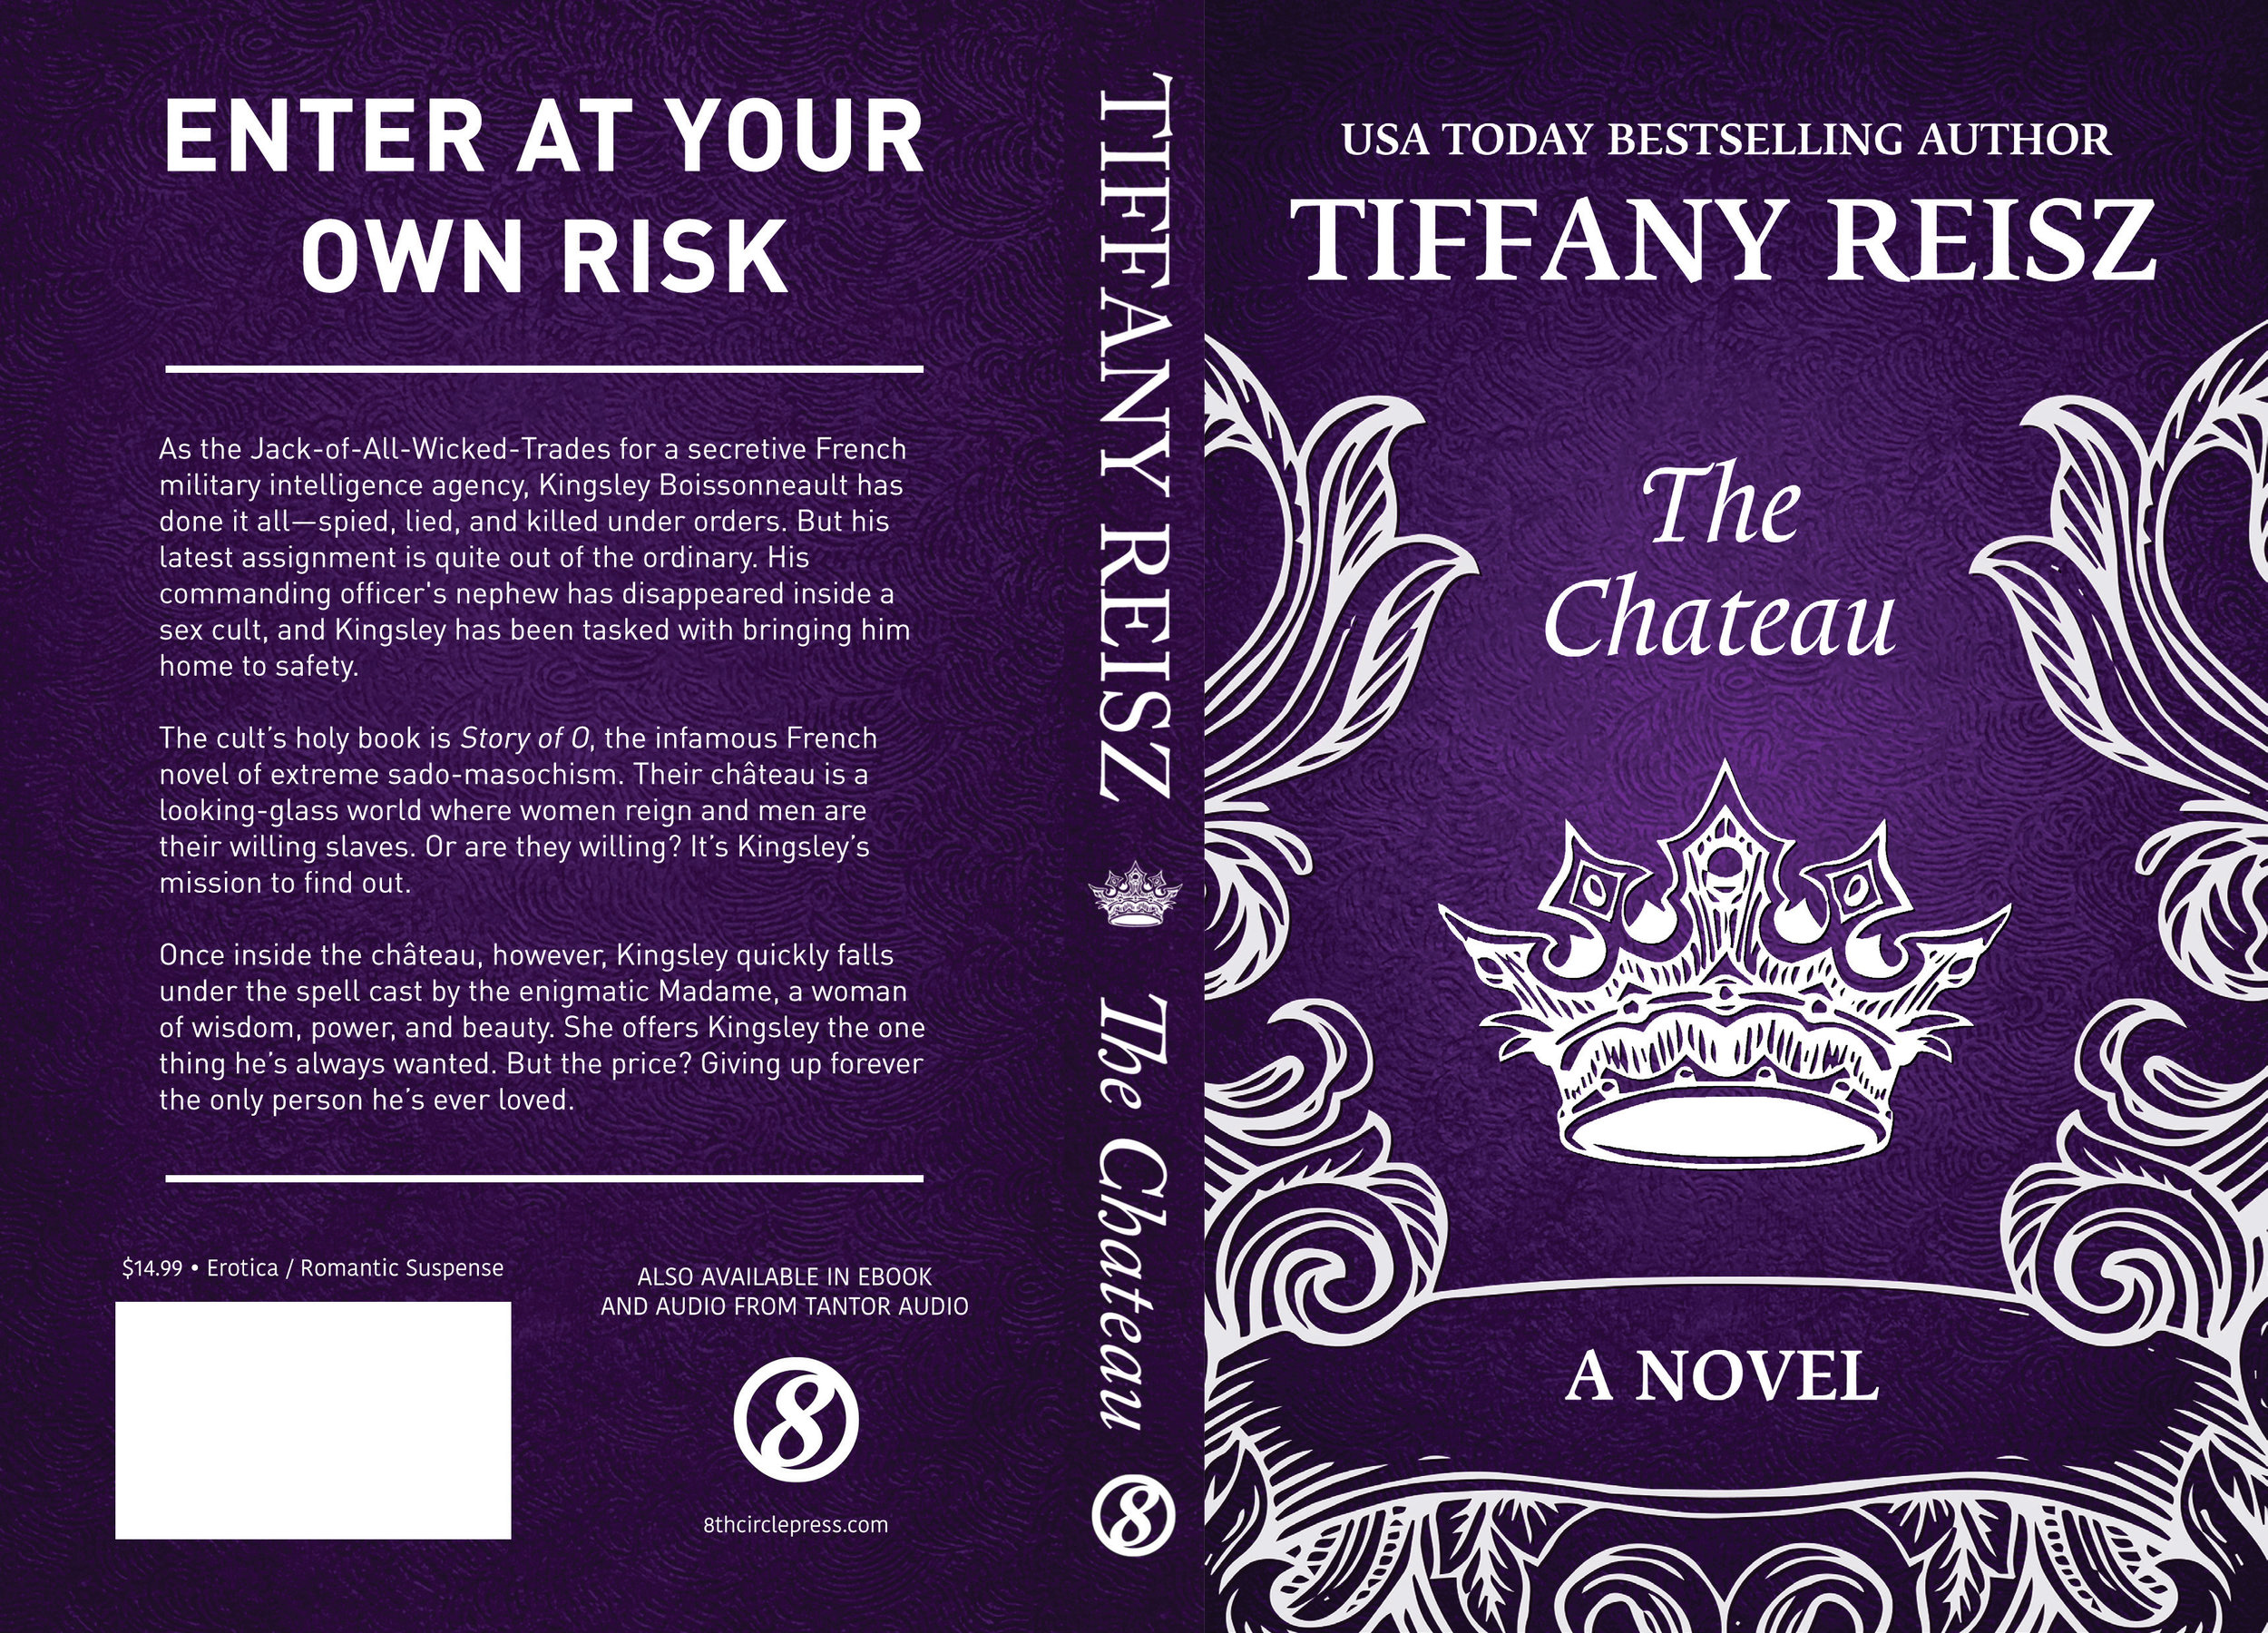 The Chateau Bloggers Tiffany Reisz